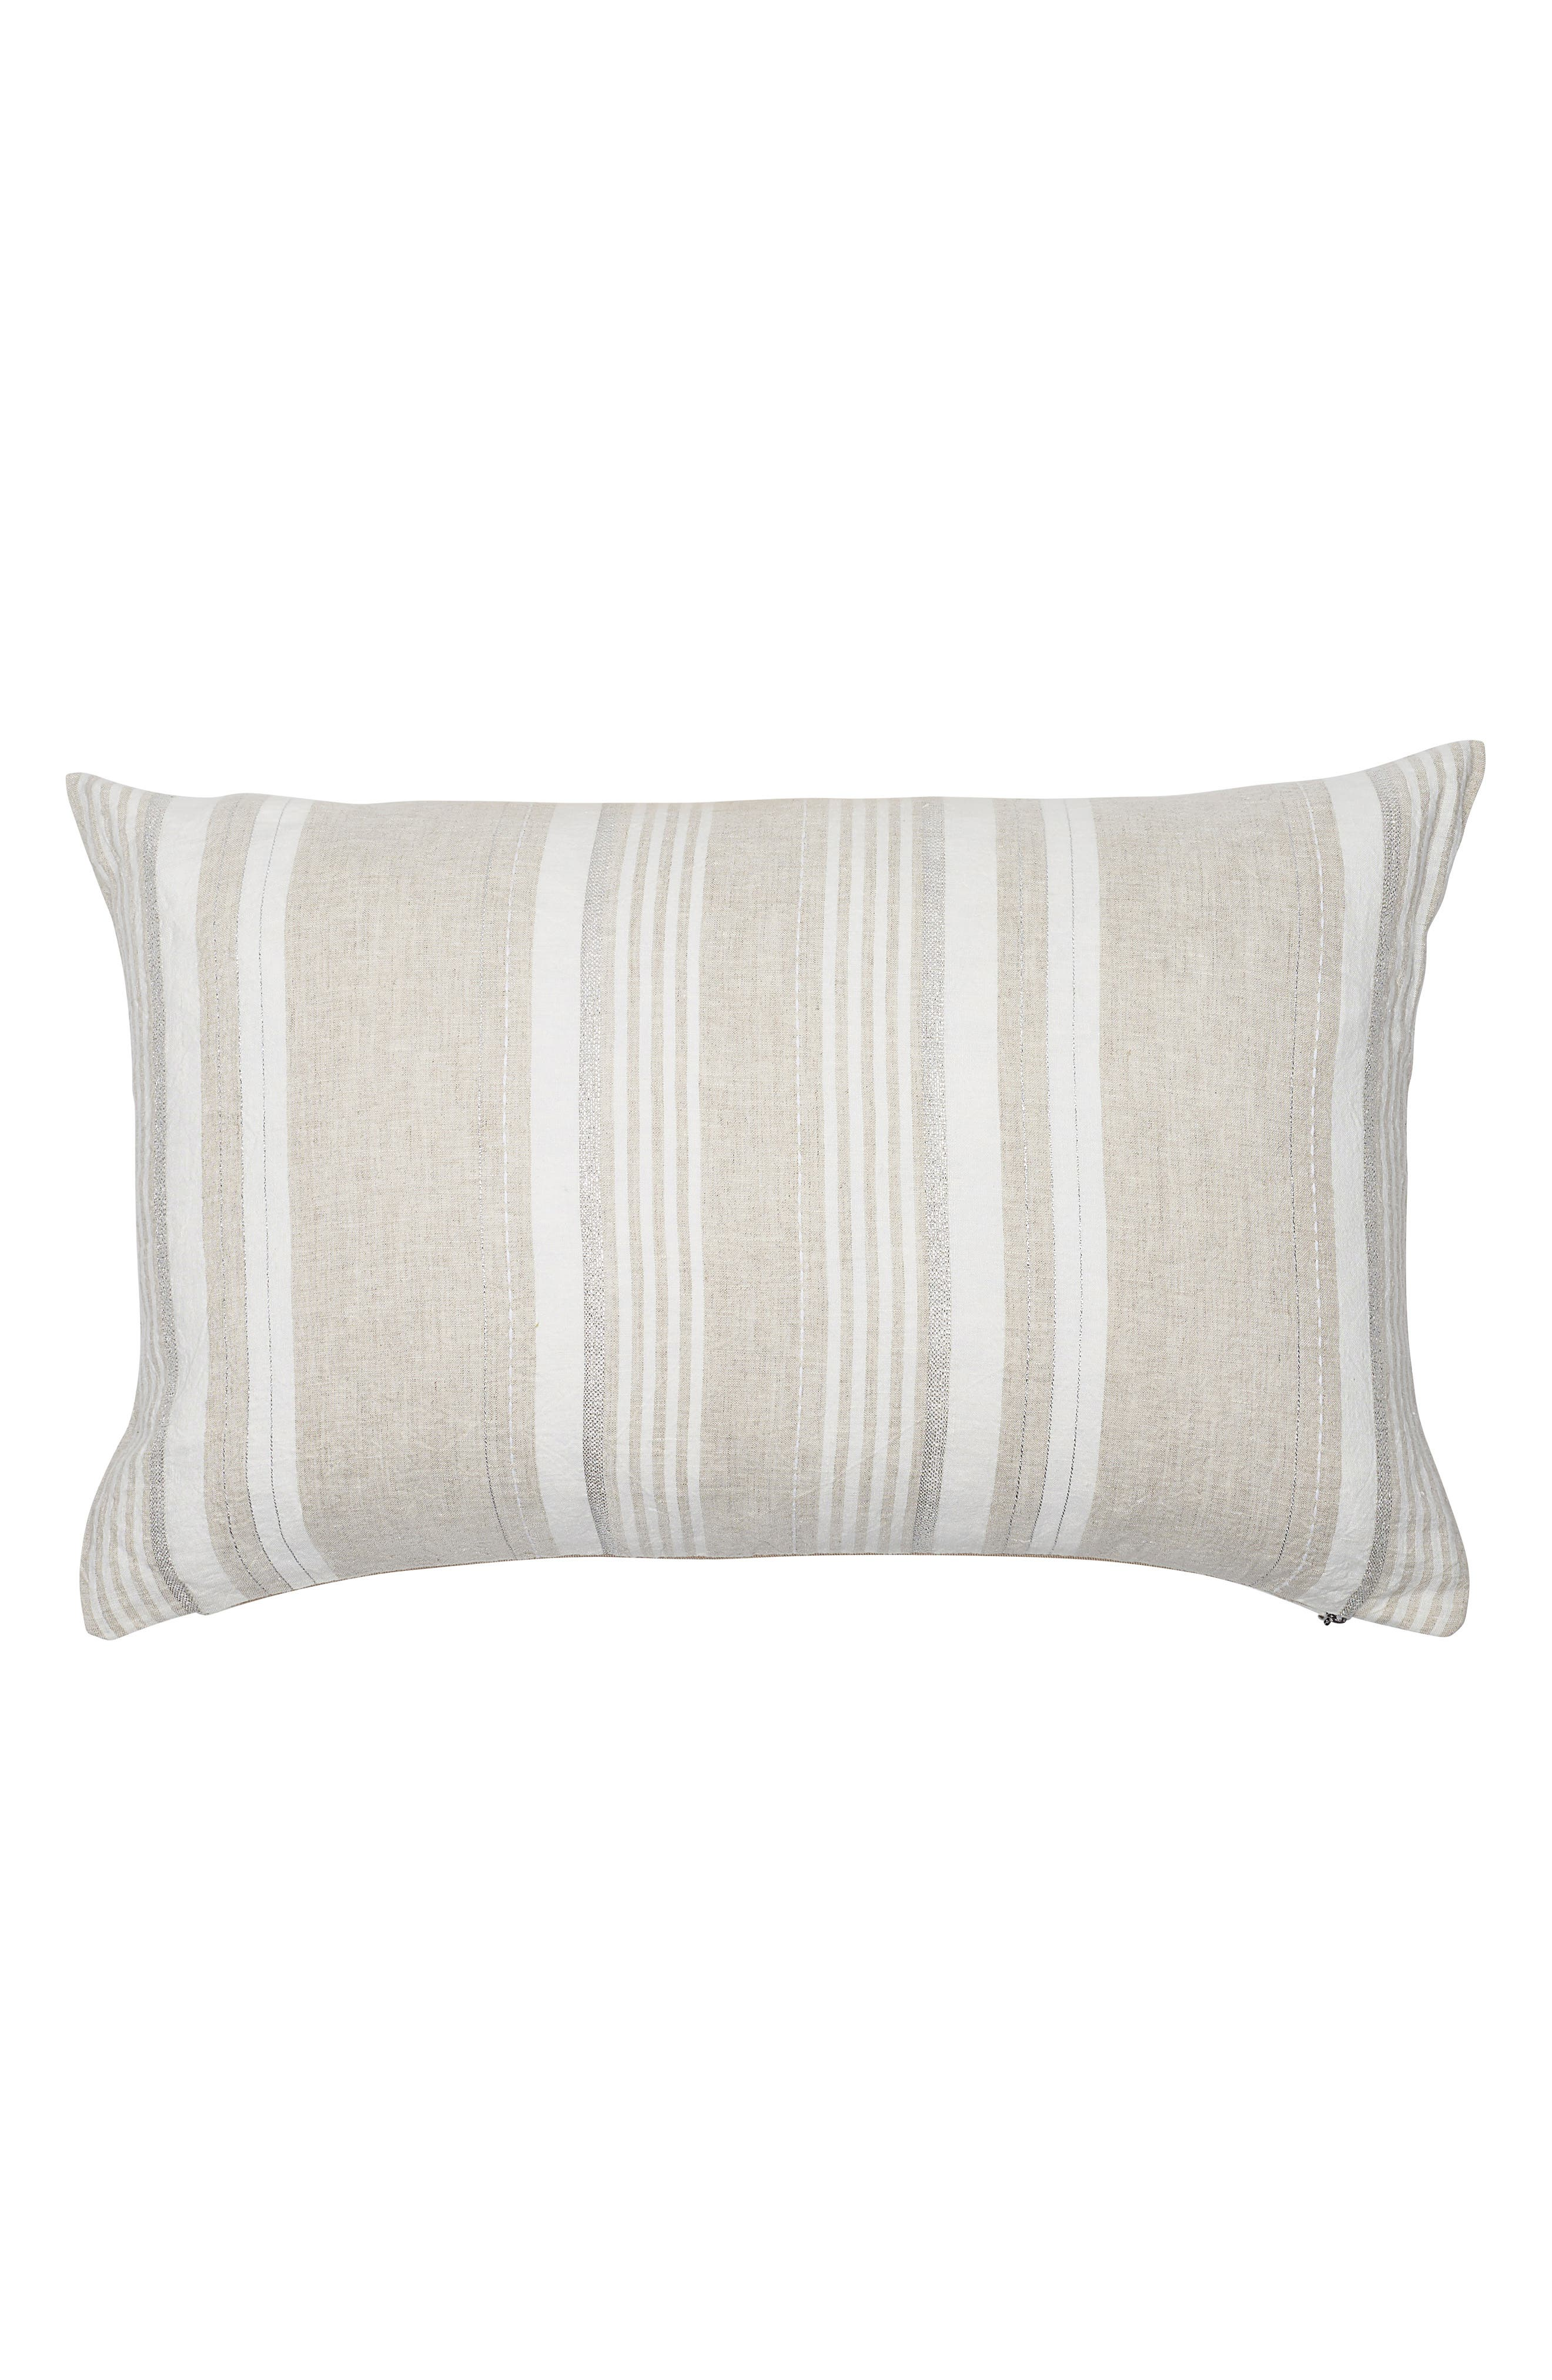 EADIE LIFESTYLE Dew Drop Scatter Accent Pillow, Main, color, NATURAL/ WHITE